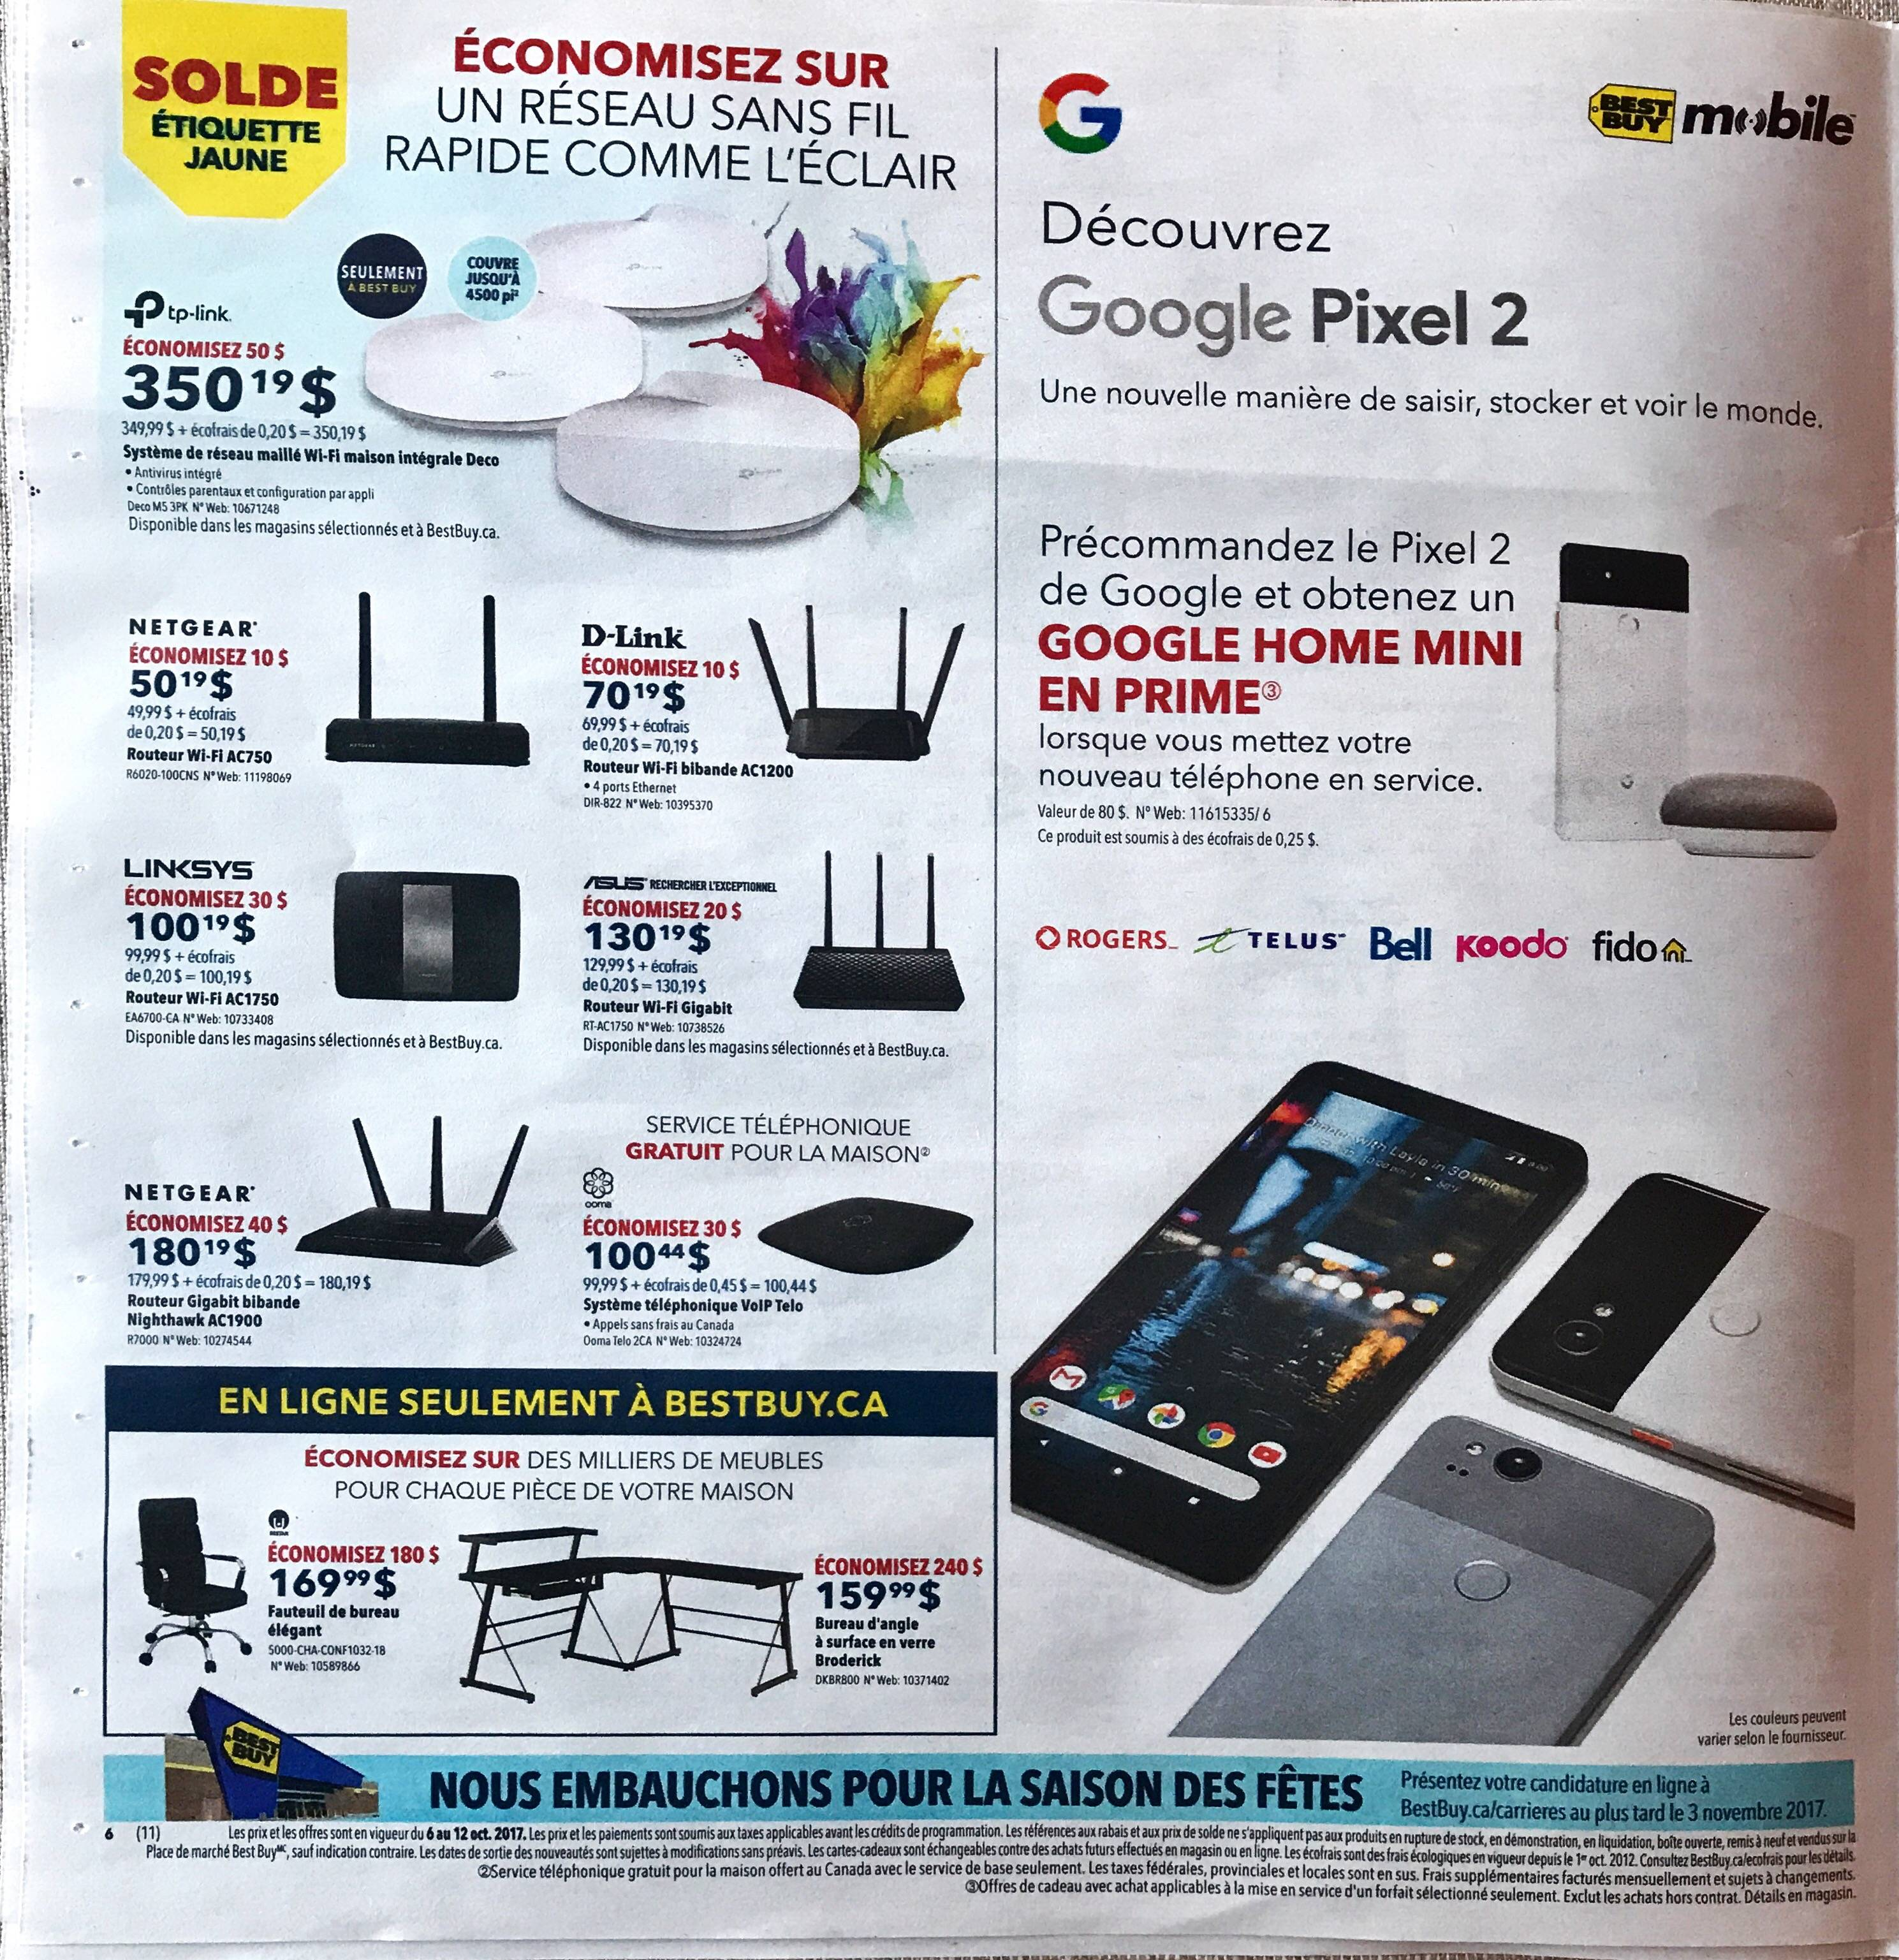 Best Buy Canada promo shows off the Pixel 2, Google Home